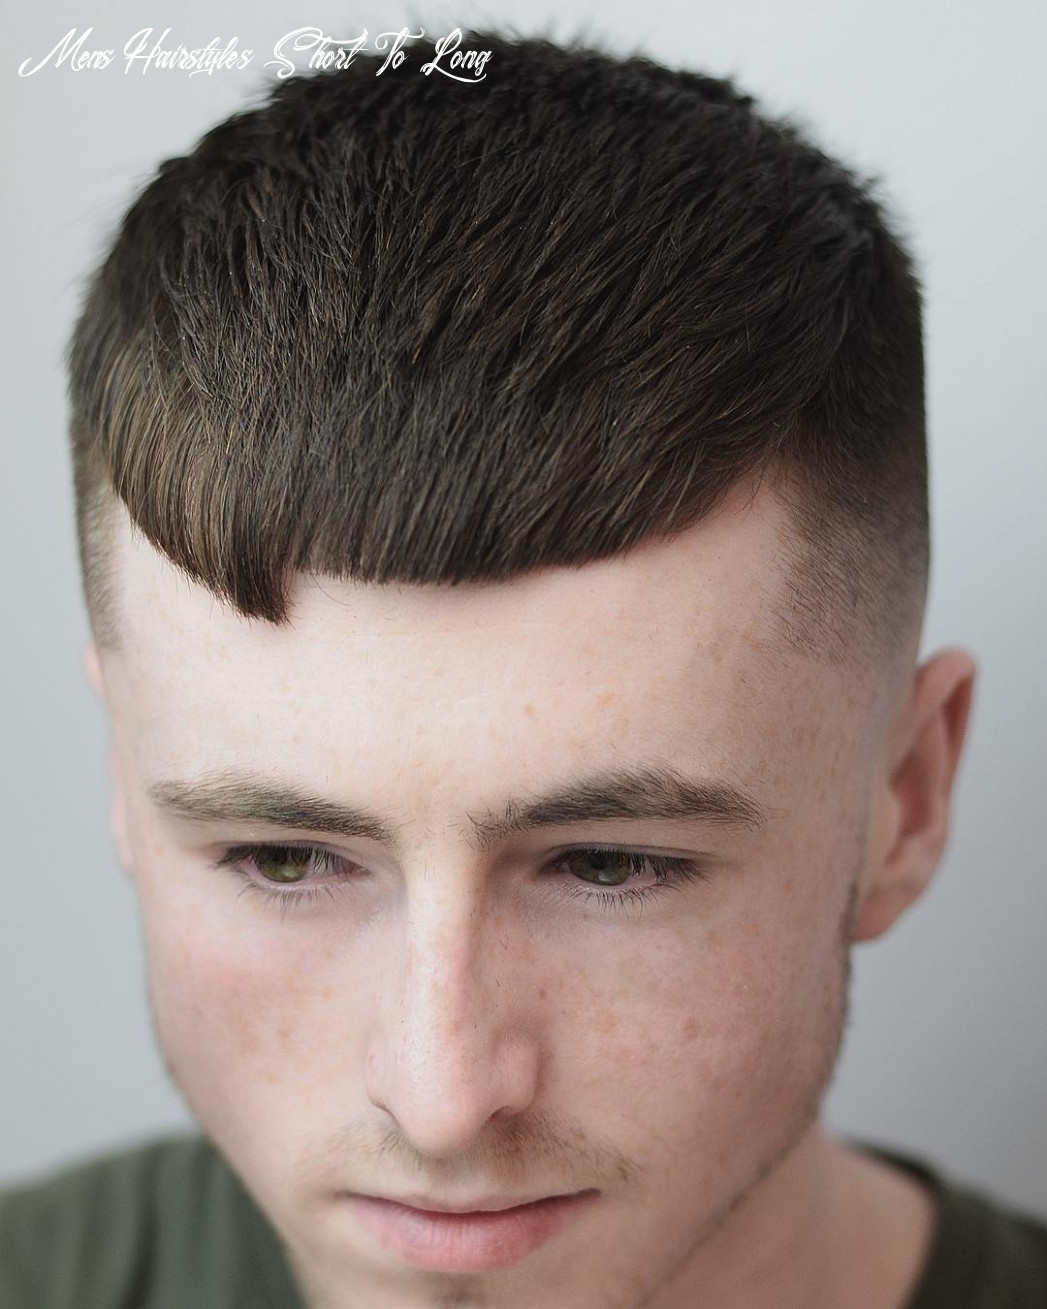 11 short haircuts for men > fresh styles for july 11 mens hairstyles short to long